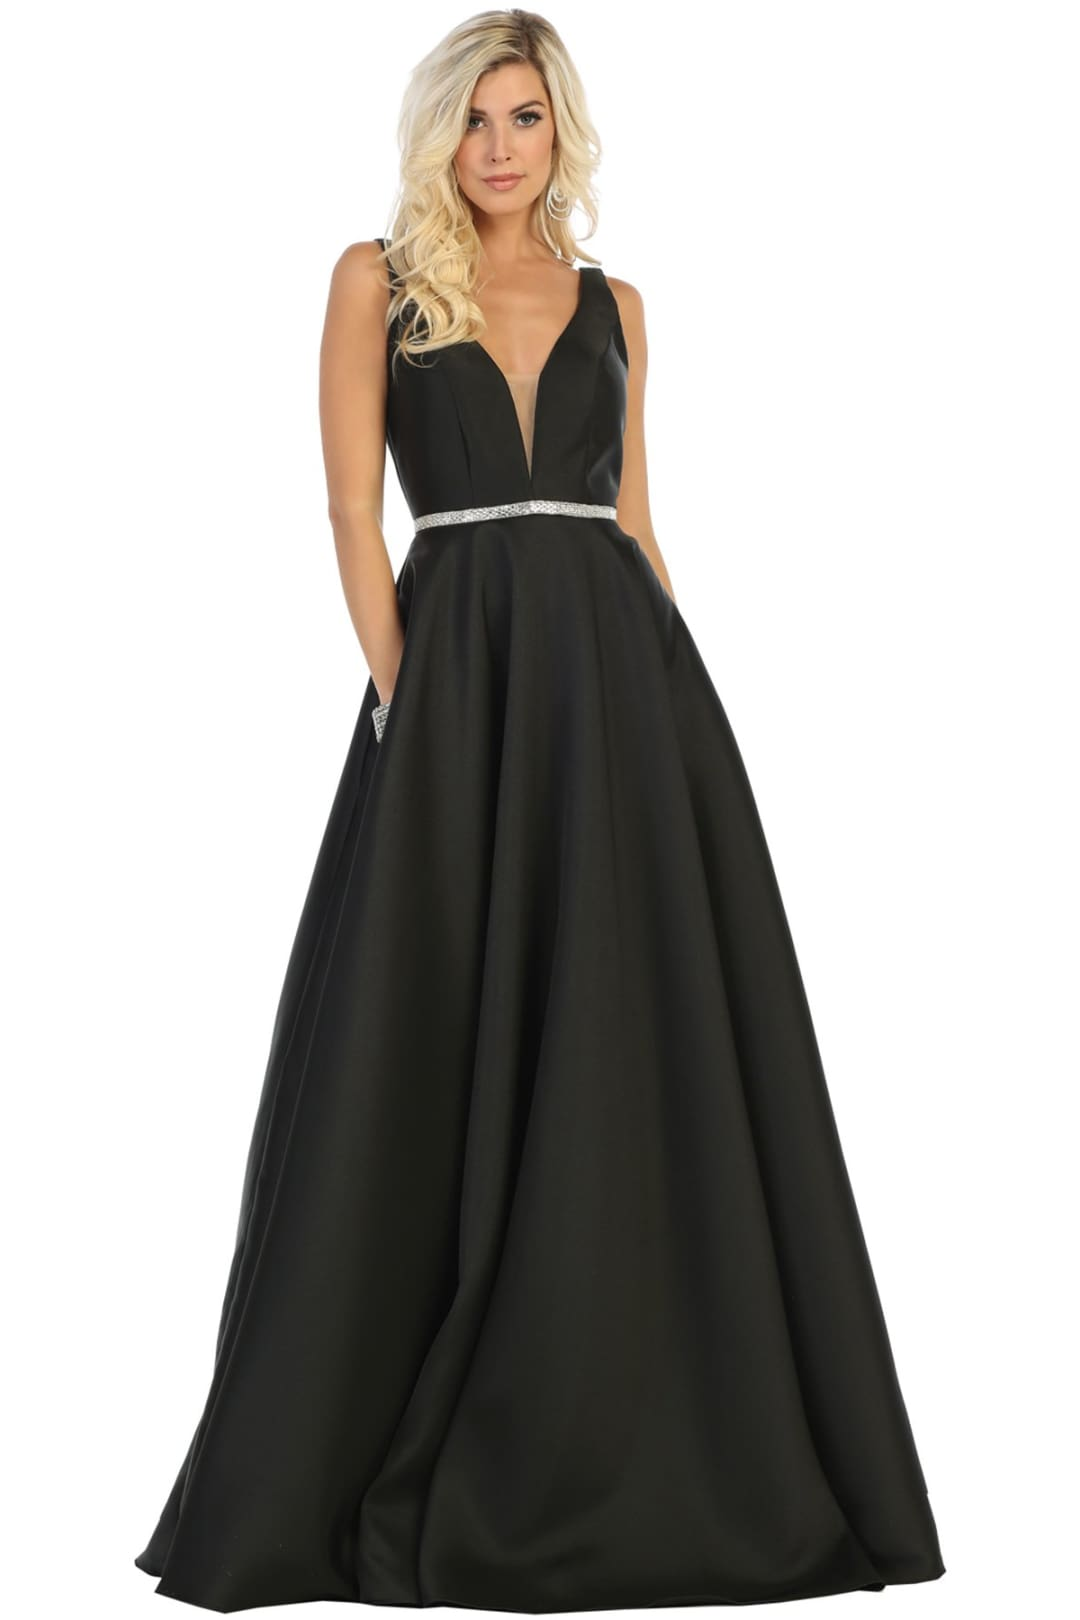 Simple Sleeveless Prom Dress - Black / 4